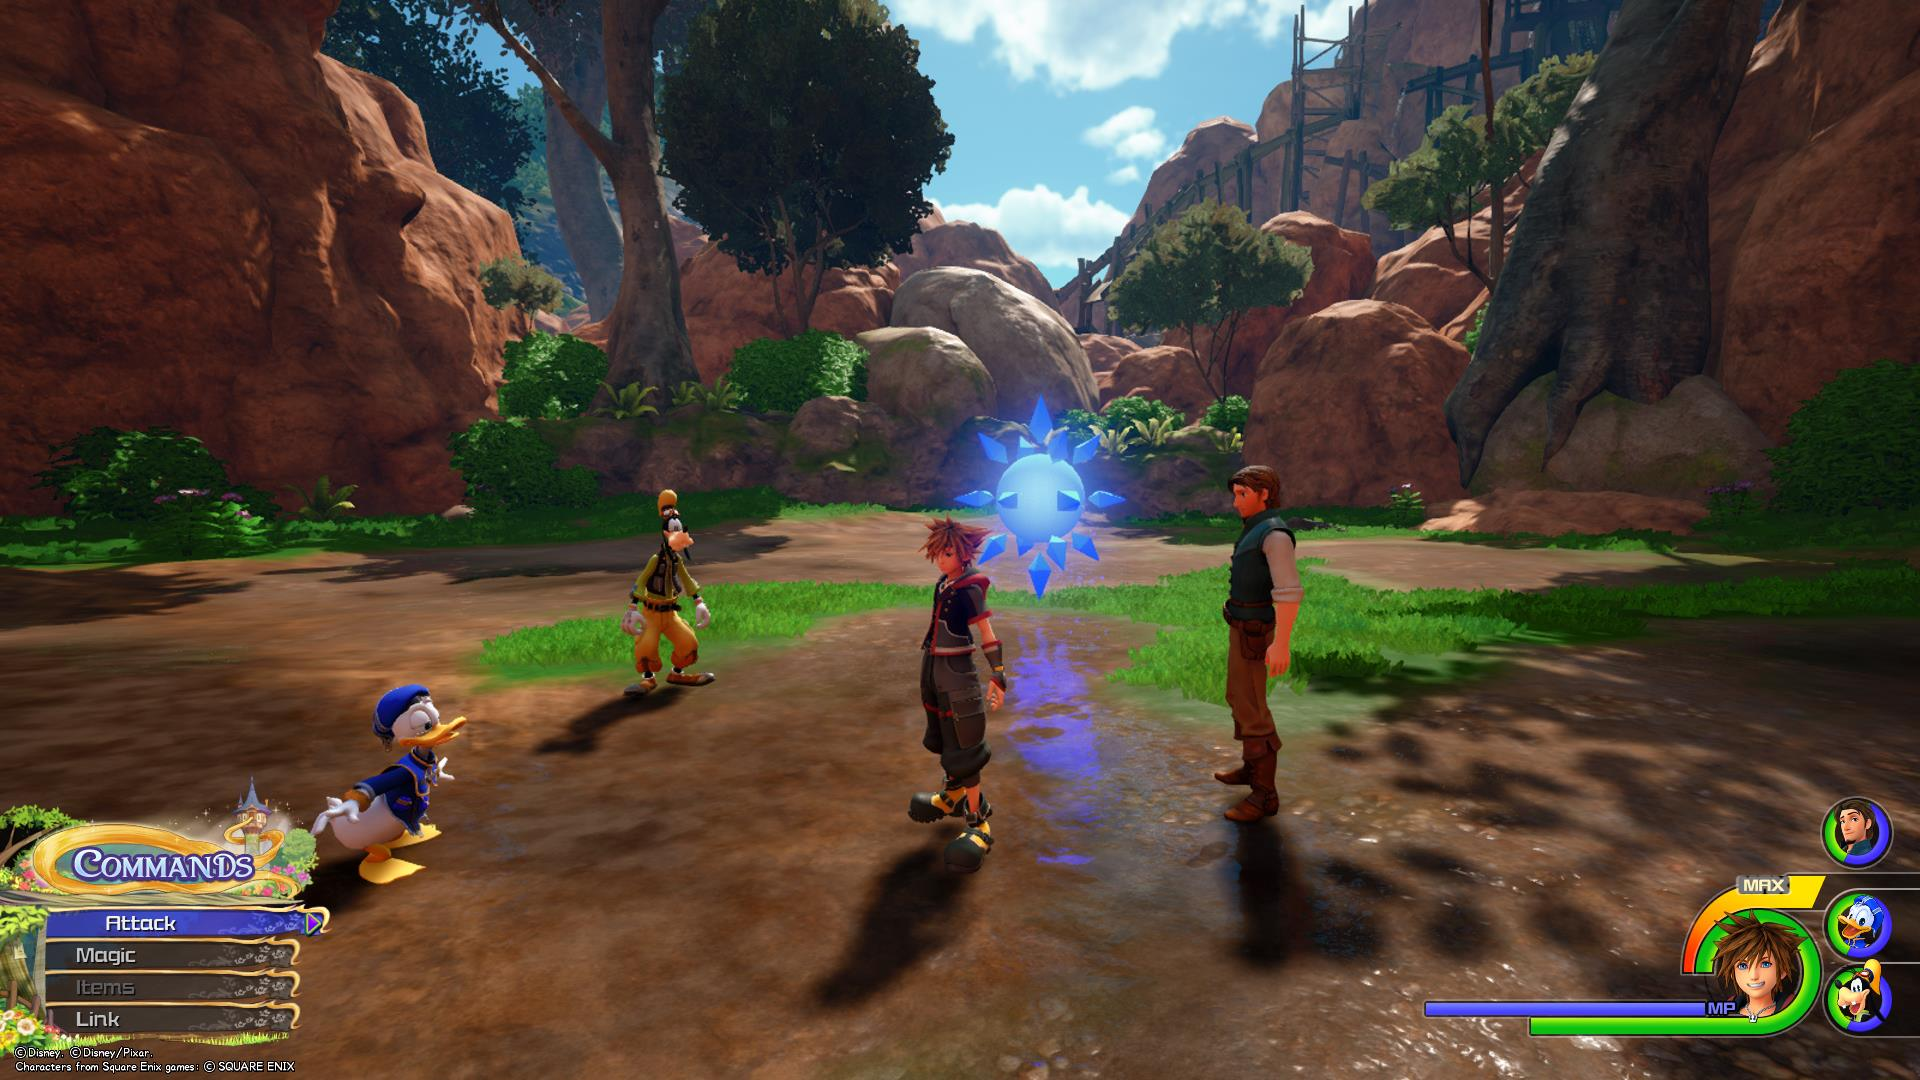 The sixth Battlegate in Kingdom Hearts 3 is located in the Wildflower Clearing area of Kingdom of Corona.